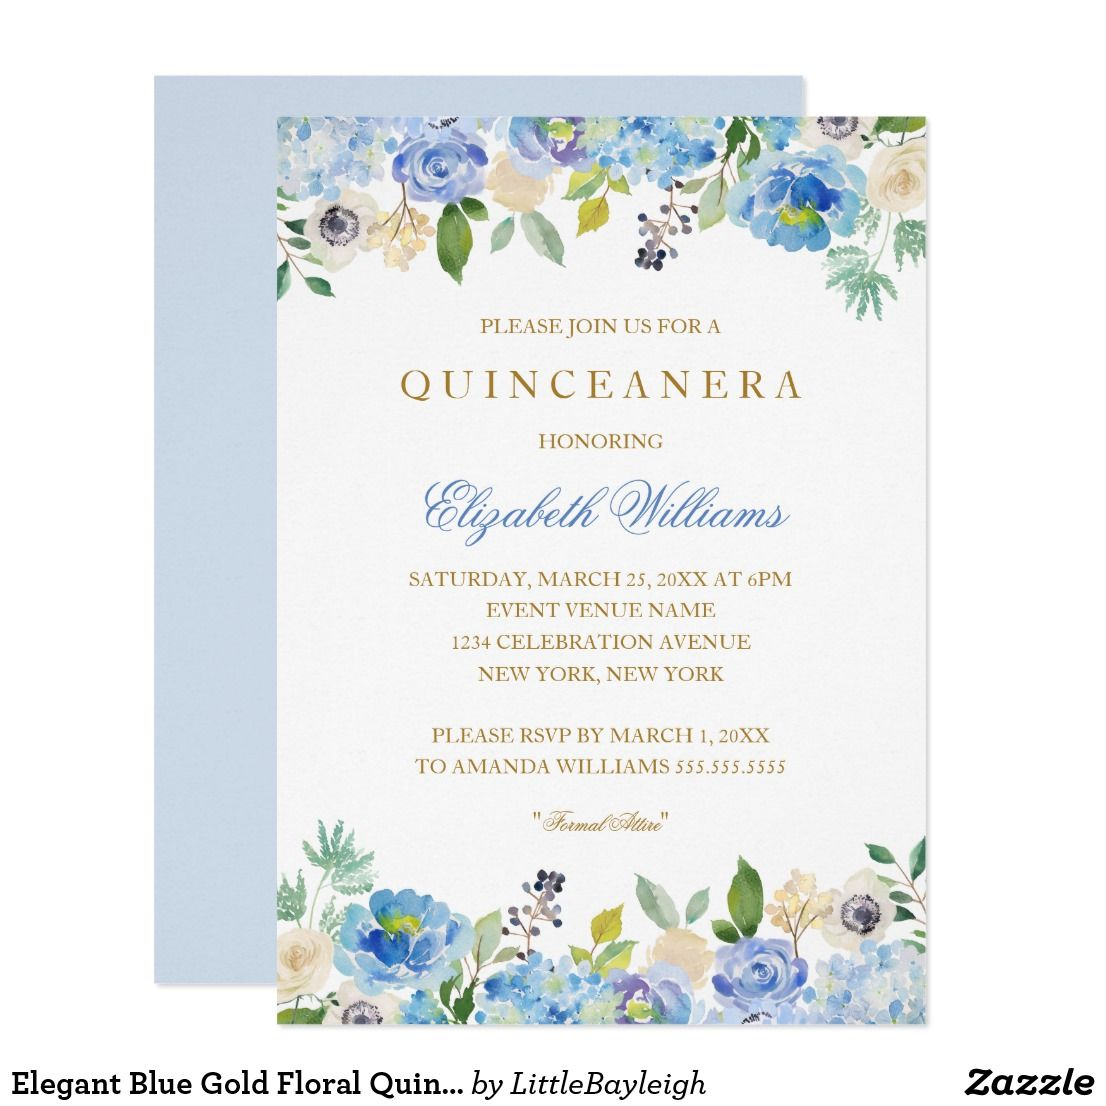 Elegant blue gold floral quinceanera invitation florais e elegant blue gold floral quinceanera invitation more pretty floral quinceanera invitations in the little bayleigh store stopboris Choice Image